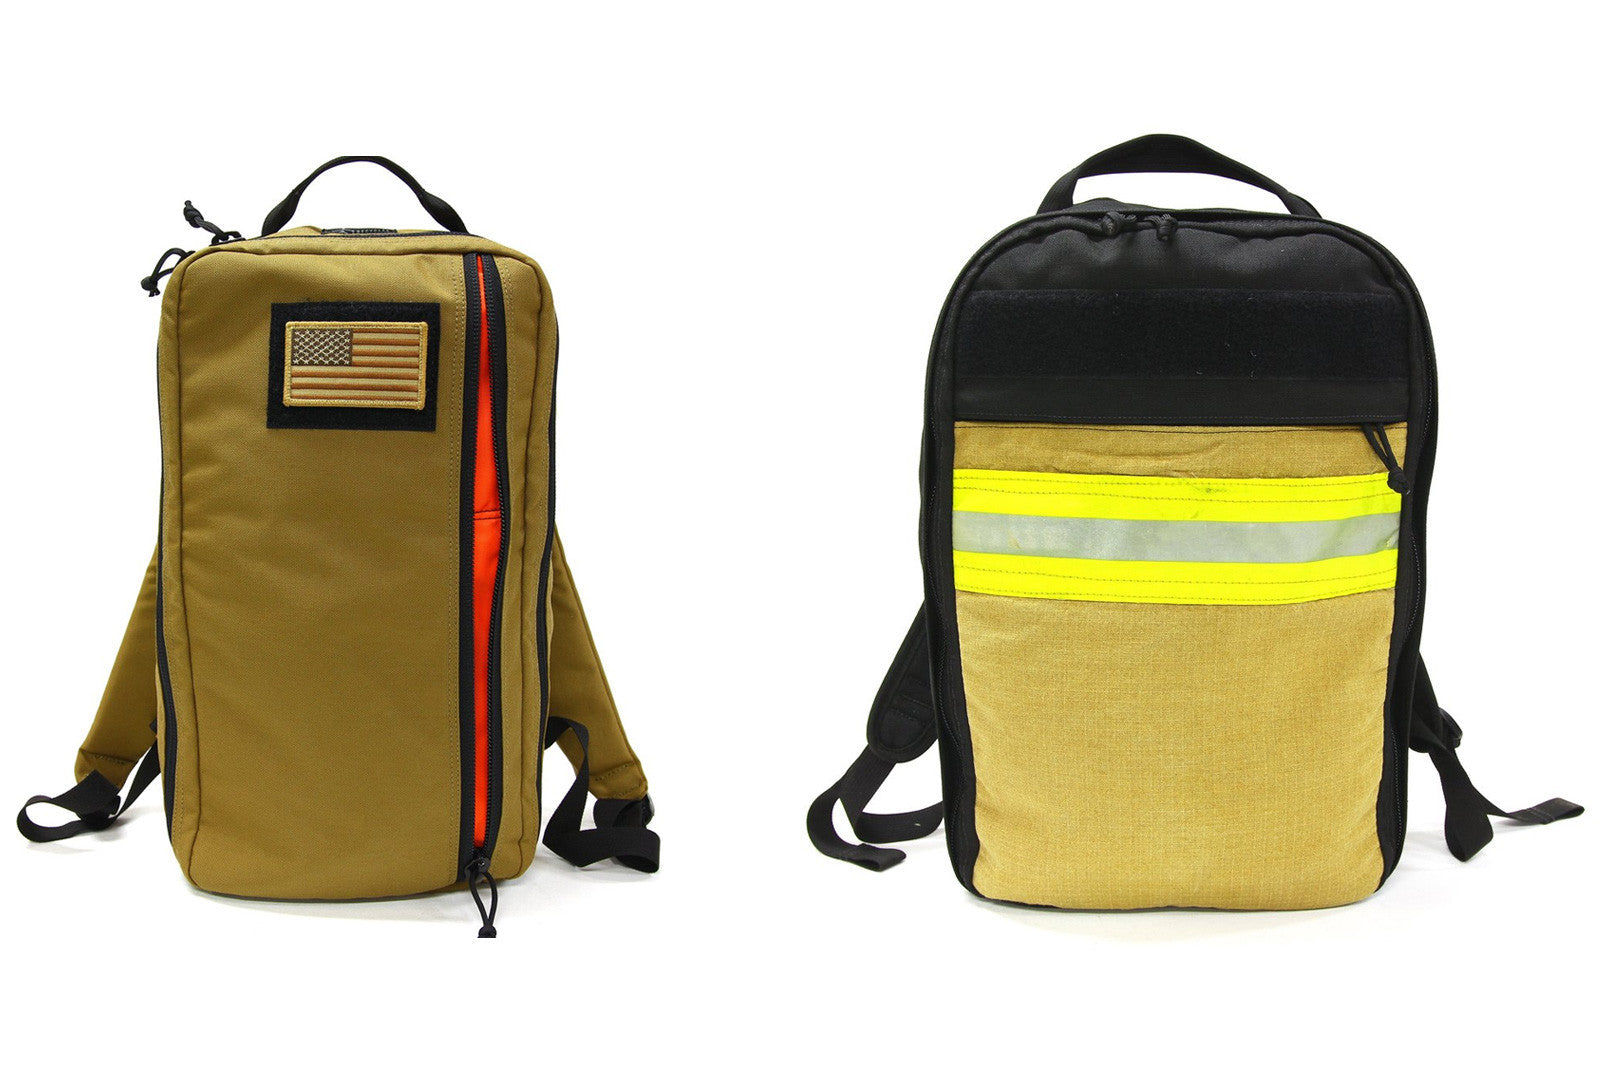 Recycled Firefighter Backpack 12L and 21L